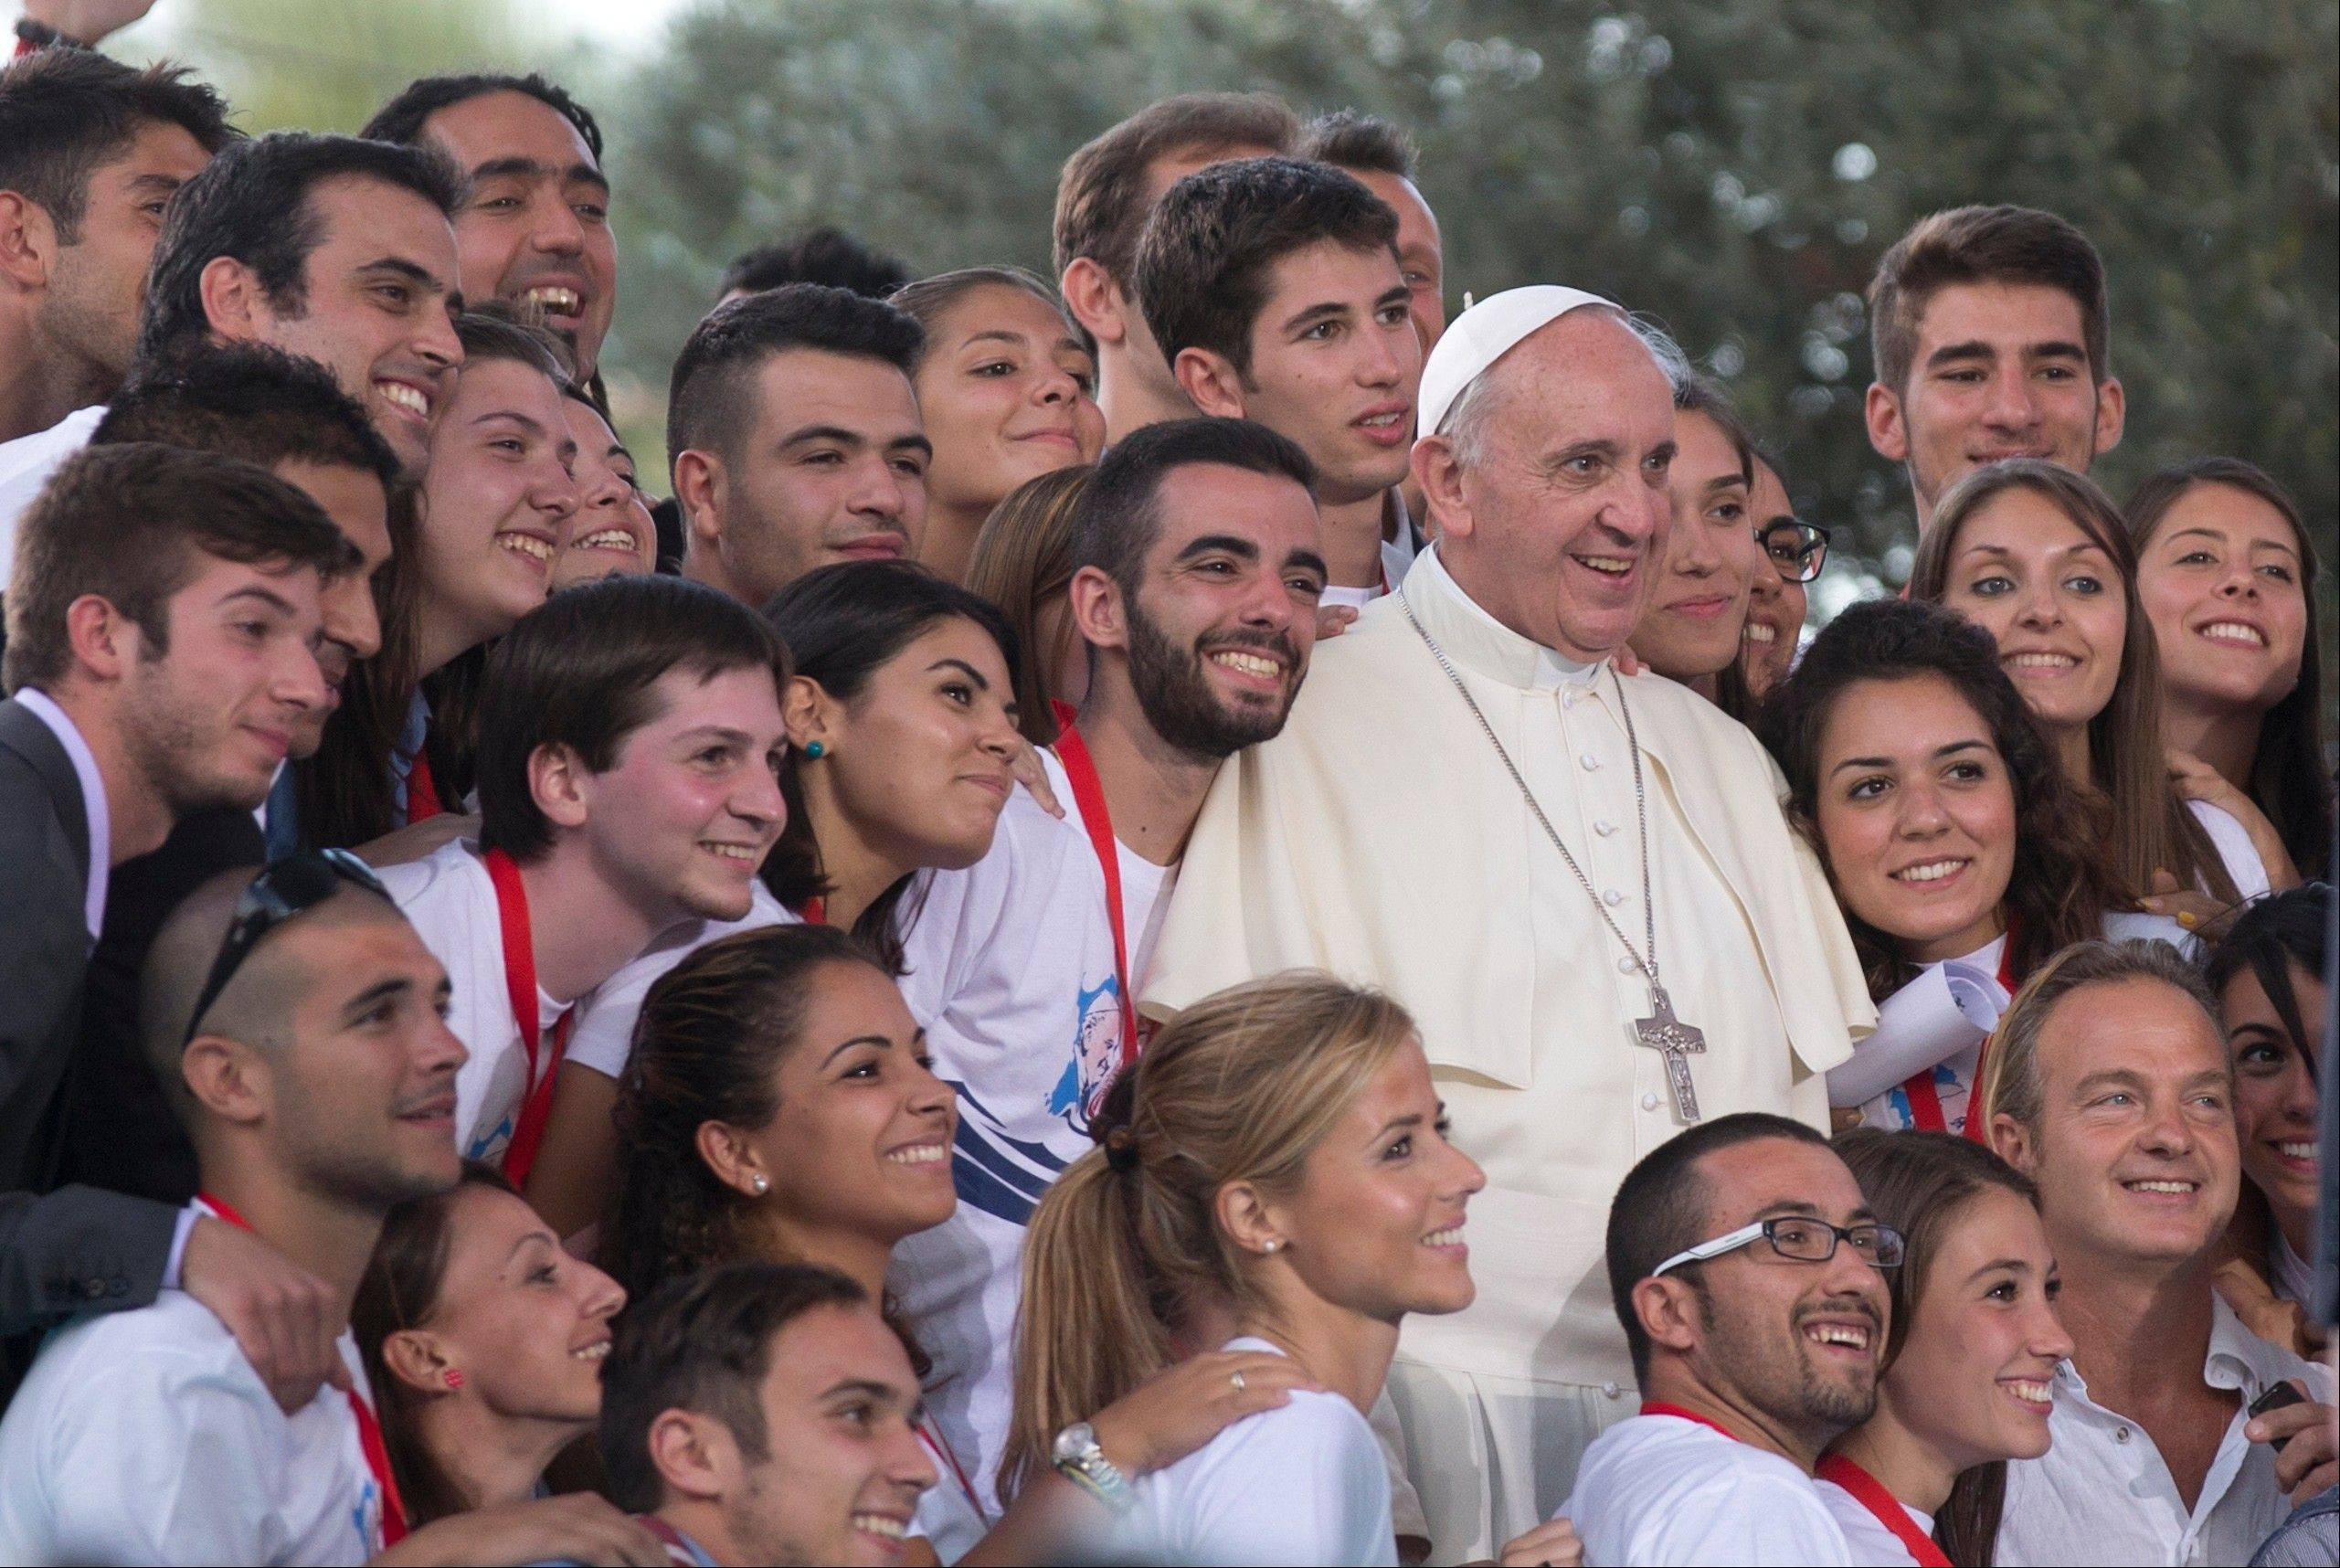 Pope Francis poses for a photo after a meeting with youths in downtown Cagliari, Italy, Sunday. Francis denounced what he called big business's idolatry of money over man as he traveled Sunday to one of Italy's poorest regions to offer hope to the unemployed and entrepreneurs struggling to hang on.